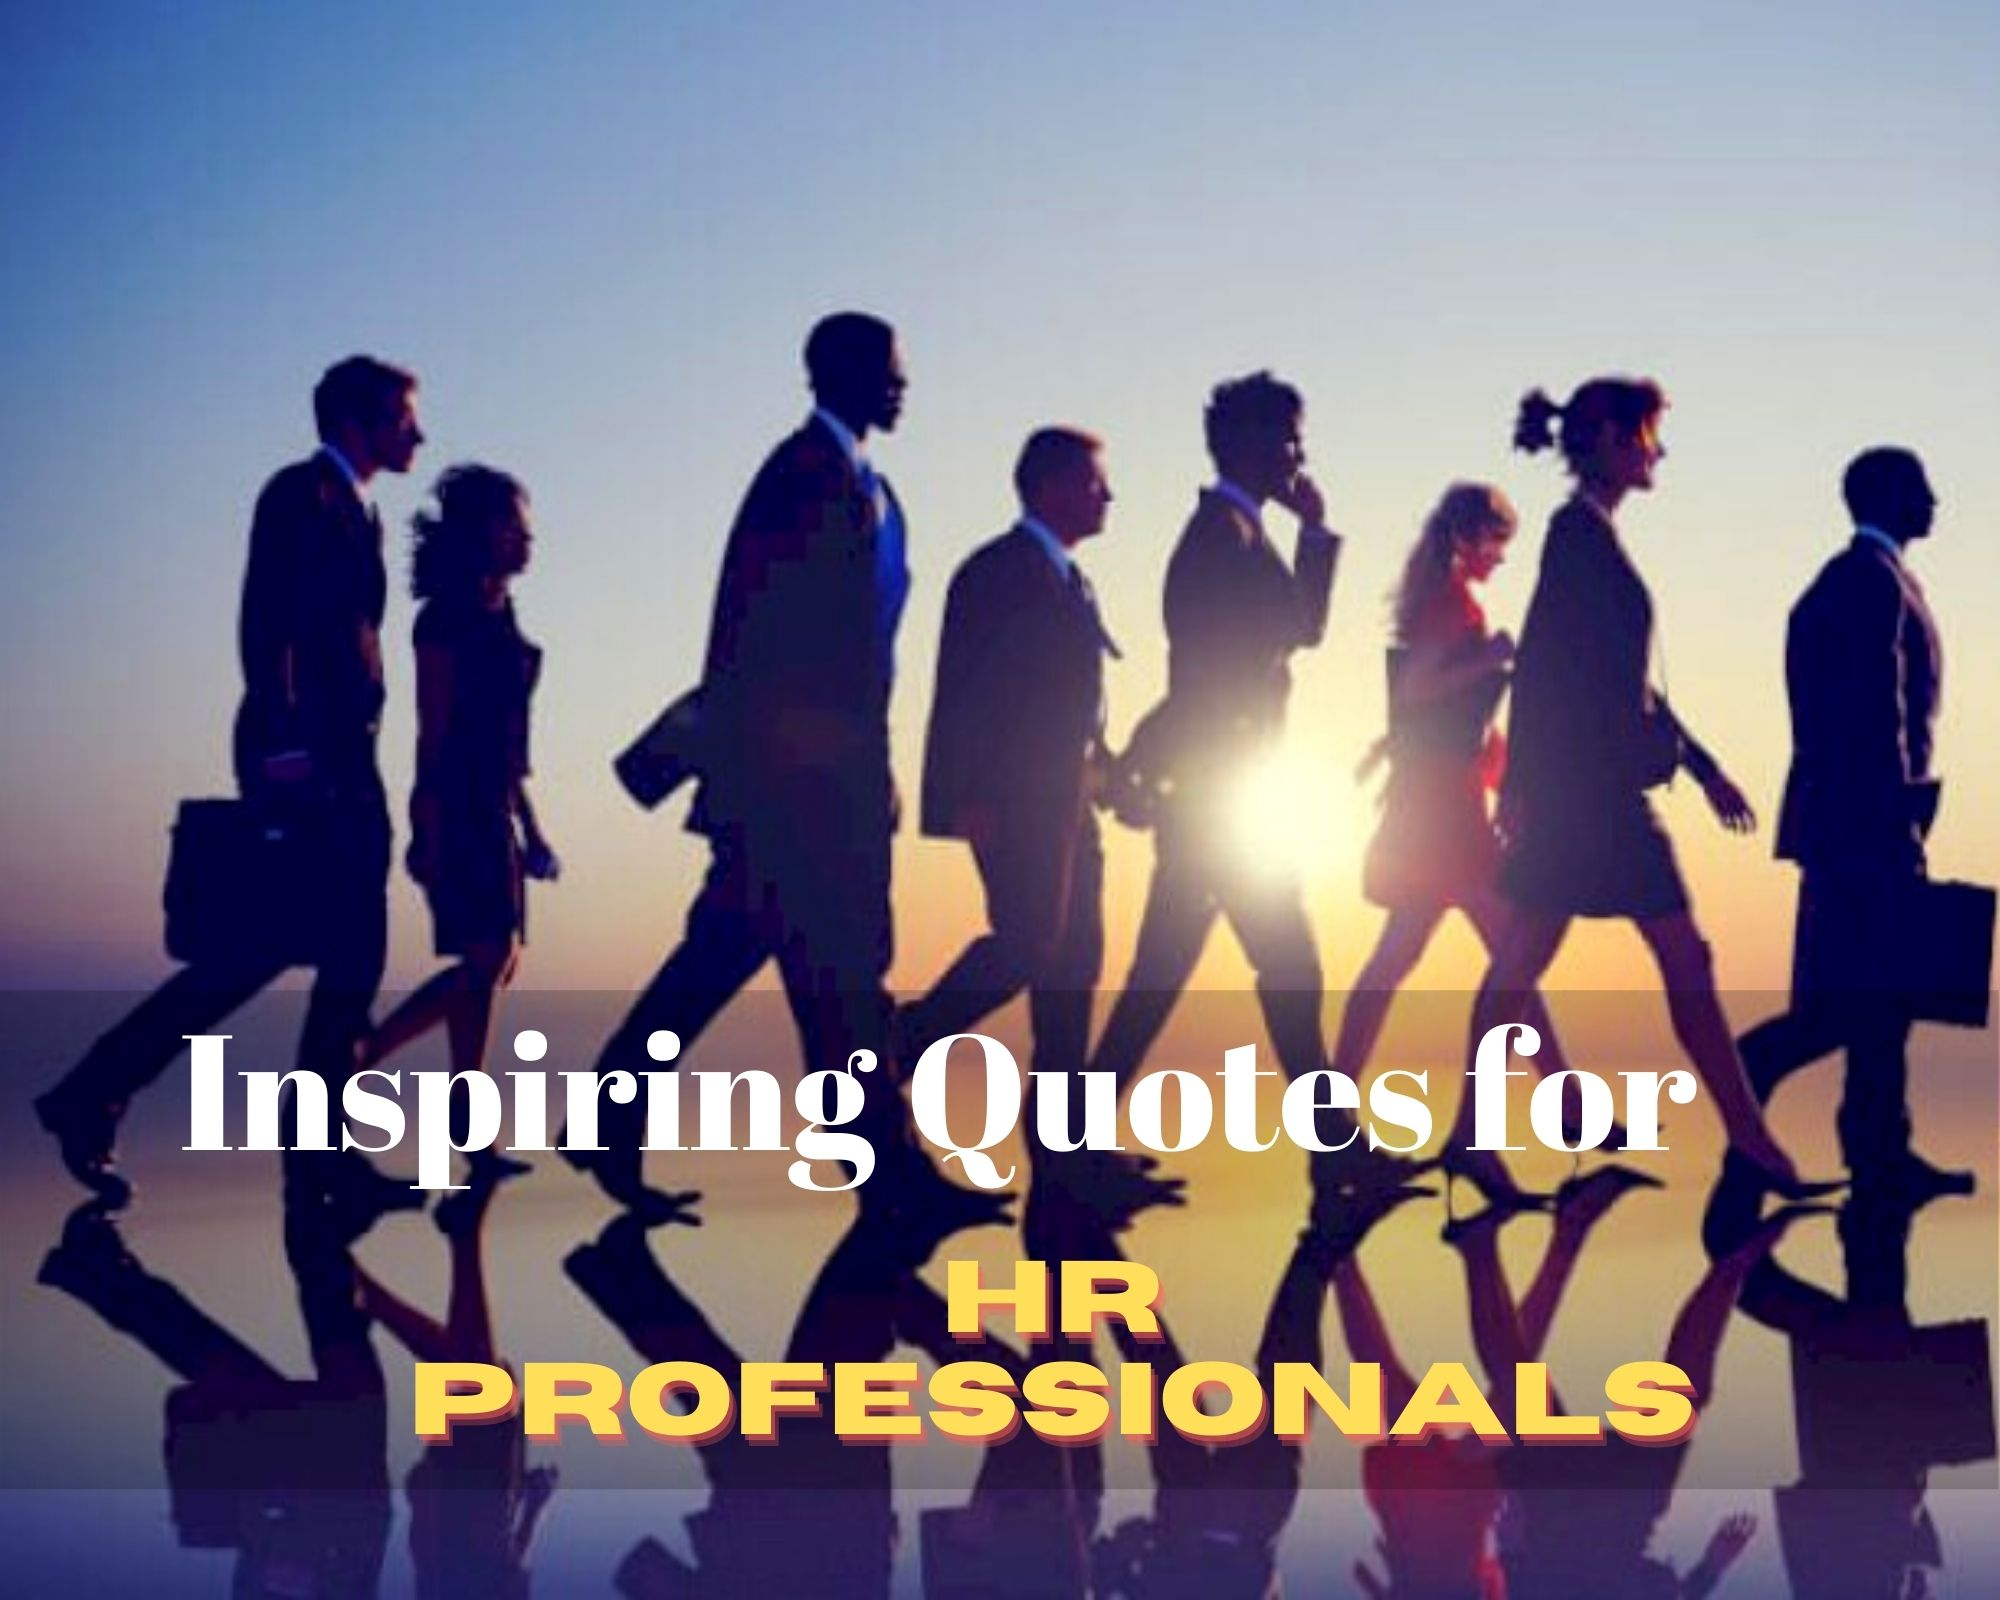 Quotes for HR Professionals